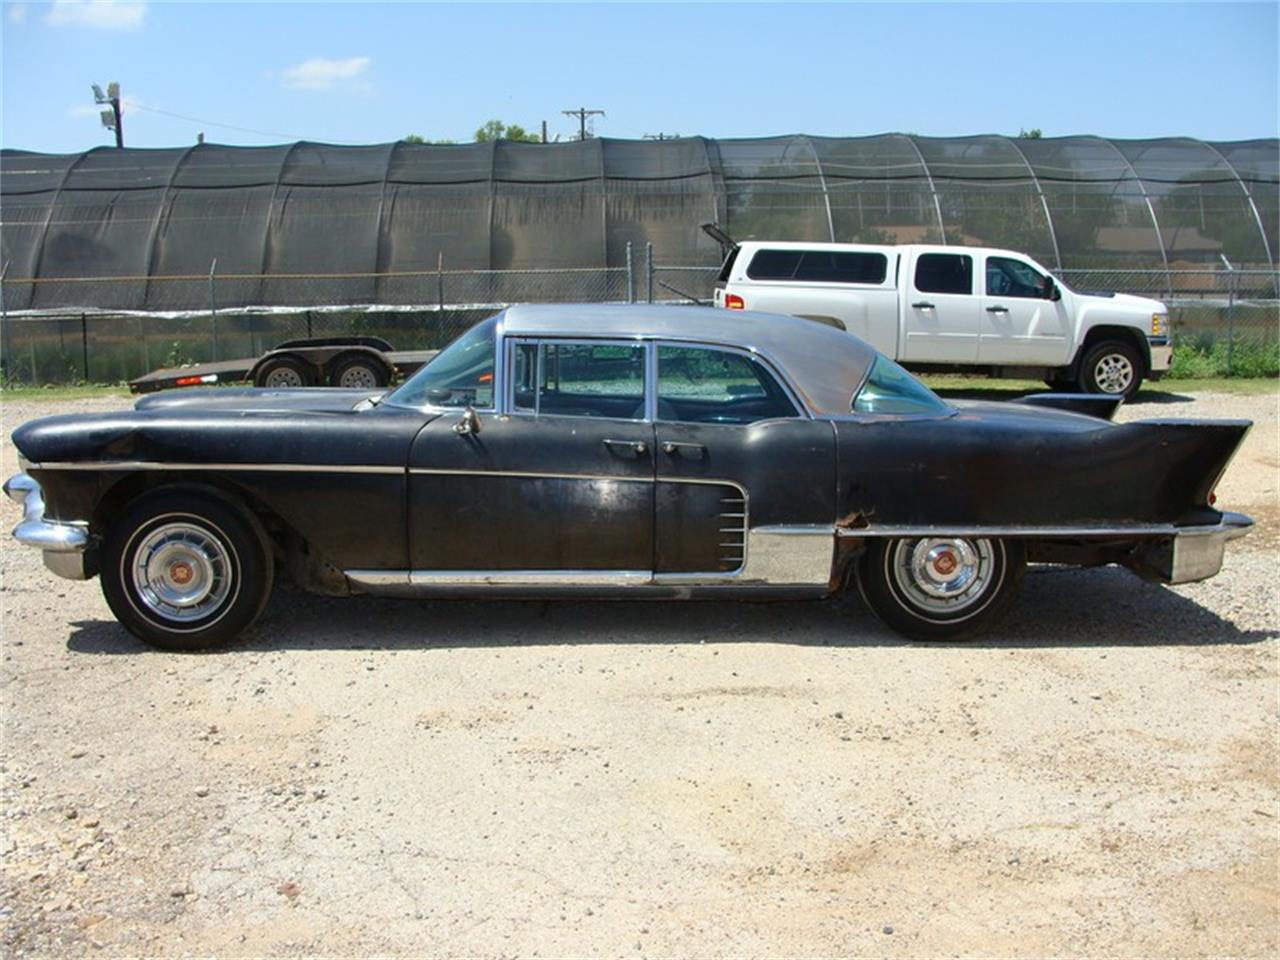 Large Picture of Classic '58 Cadillac Eldorado Brougham - $30,000.00 Offered by Pete's Classic Cars - QELZ